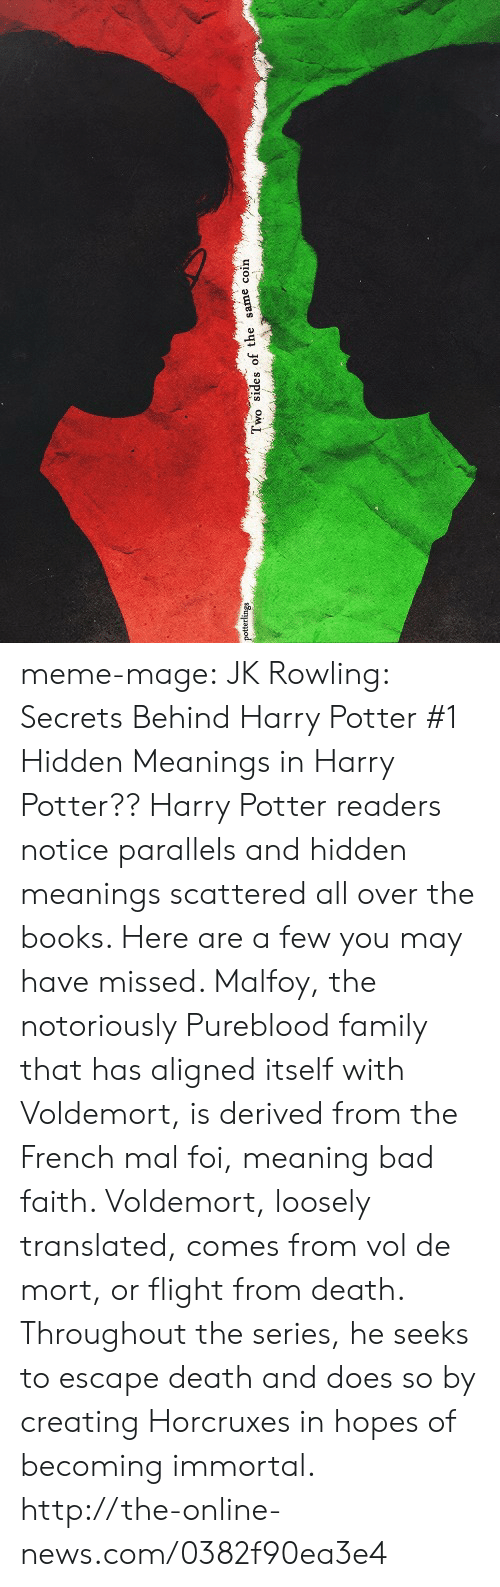 Bad, Books, and Family: wo sides of the same coin meme-mage:    JK Rowling: Secrets Behind Harry Potter   #1 Hidden Meanings in Harry Potter?? Harry Potter readers notice parallels and hidden meanings scattered all over the books. Here are a few you may have missed. Malfoy, the notoriously Pureblood family that has aligned itself with Voldemort, is derived from the French mal foi, meaning bad faith. Voldemort, loosely translated, comes from vol de mort, or flight from death. Throughout the series, he seeks to escape death and does so by creating Horcruxes in hopes of becoming immortal. http://the-online-news.com/0382f90ea3e4